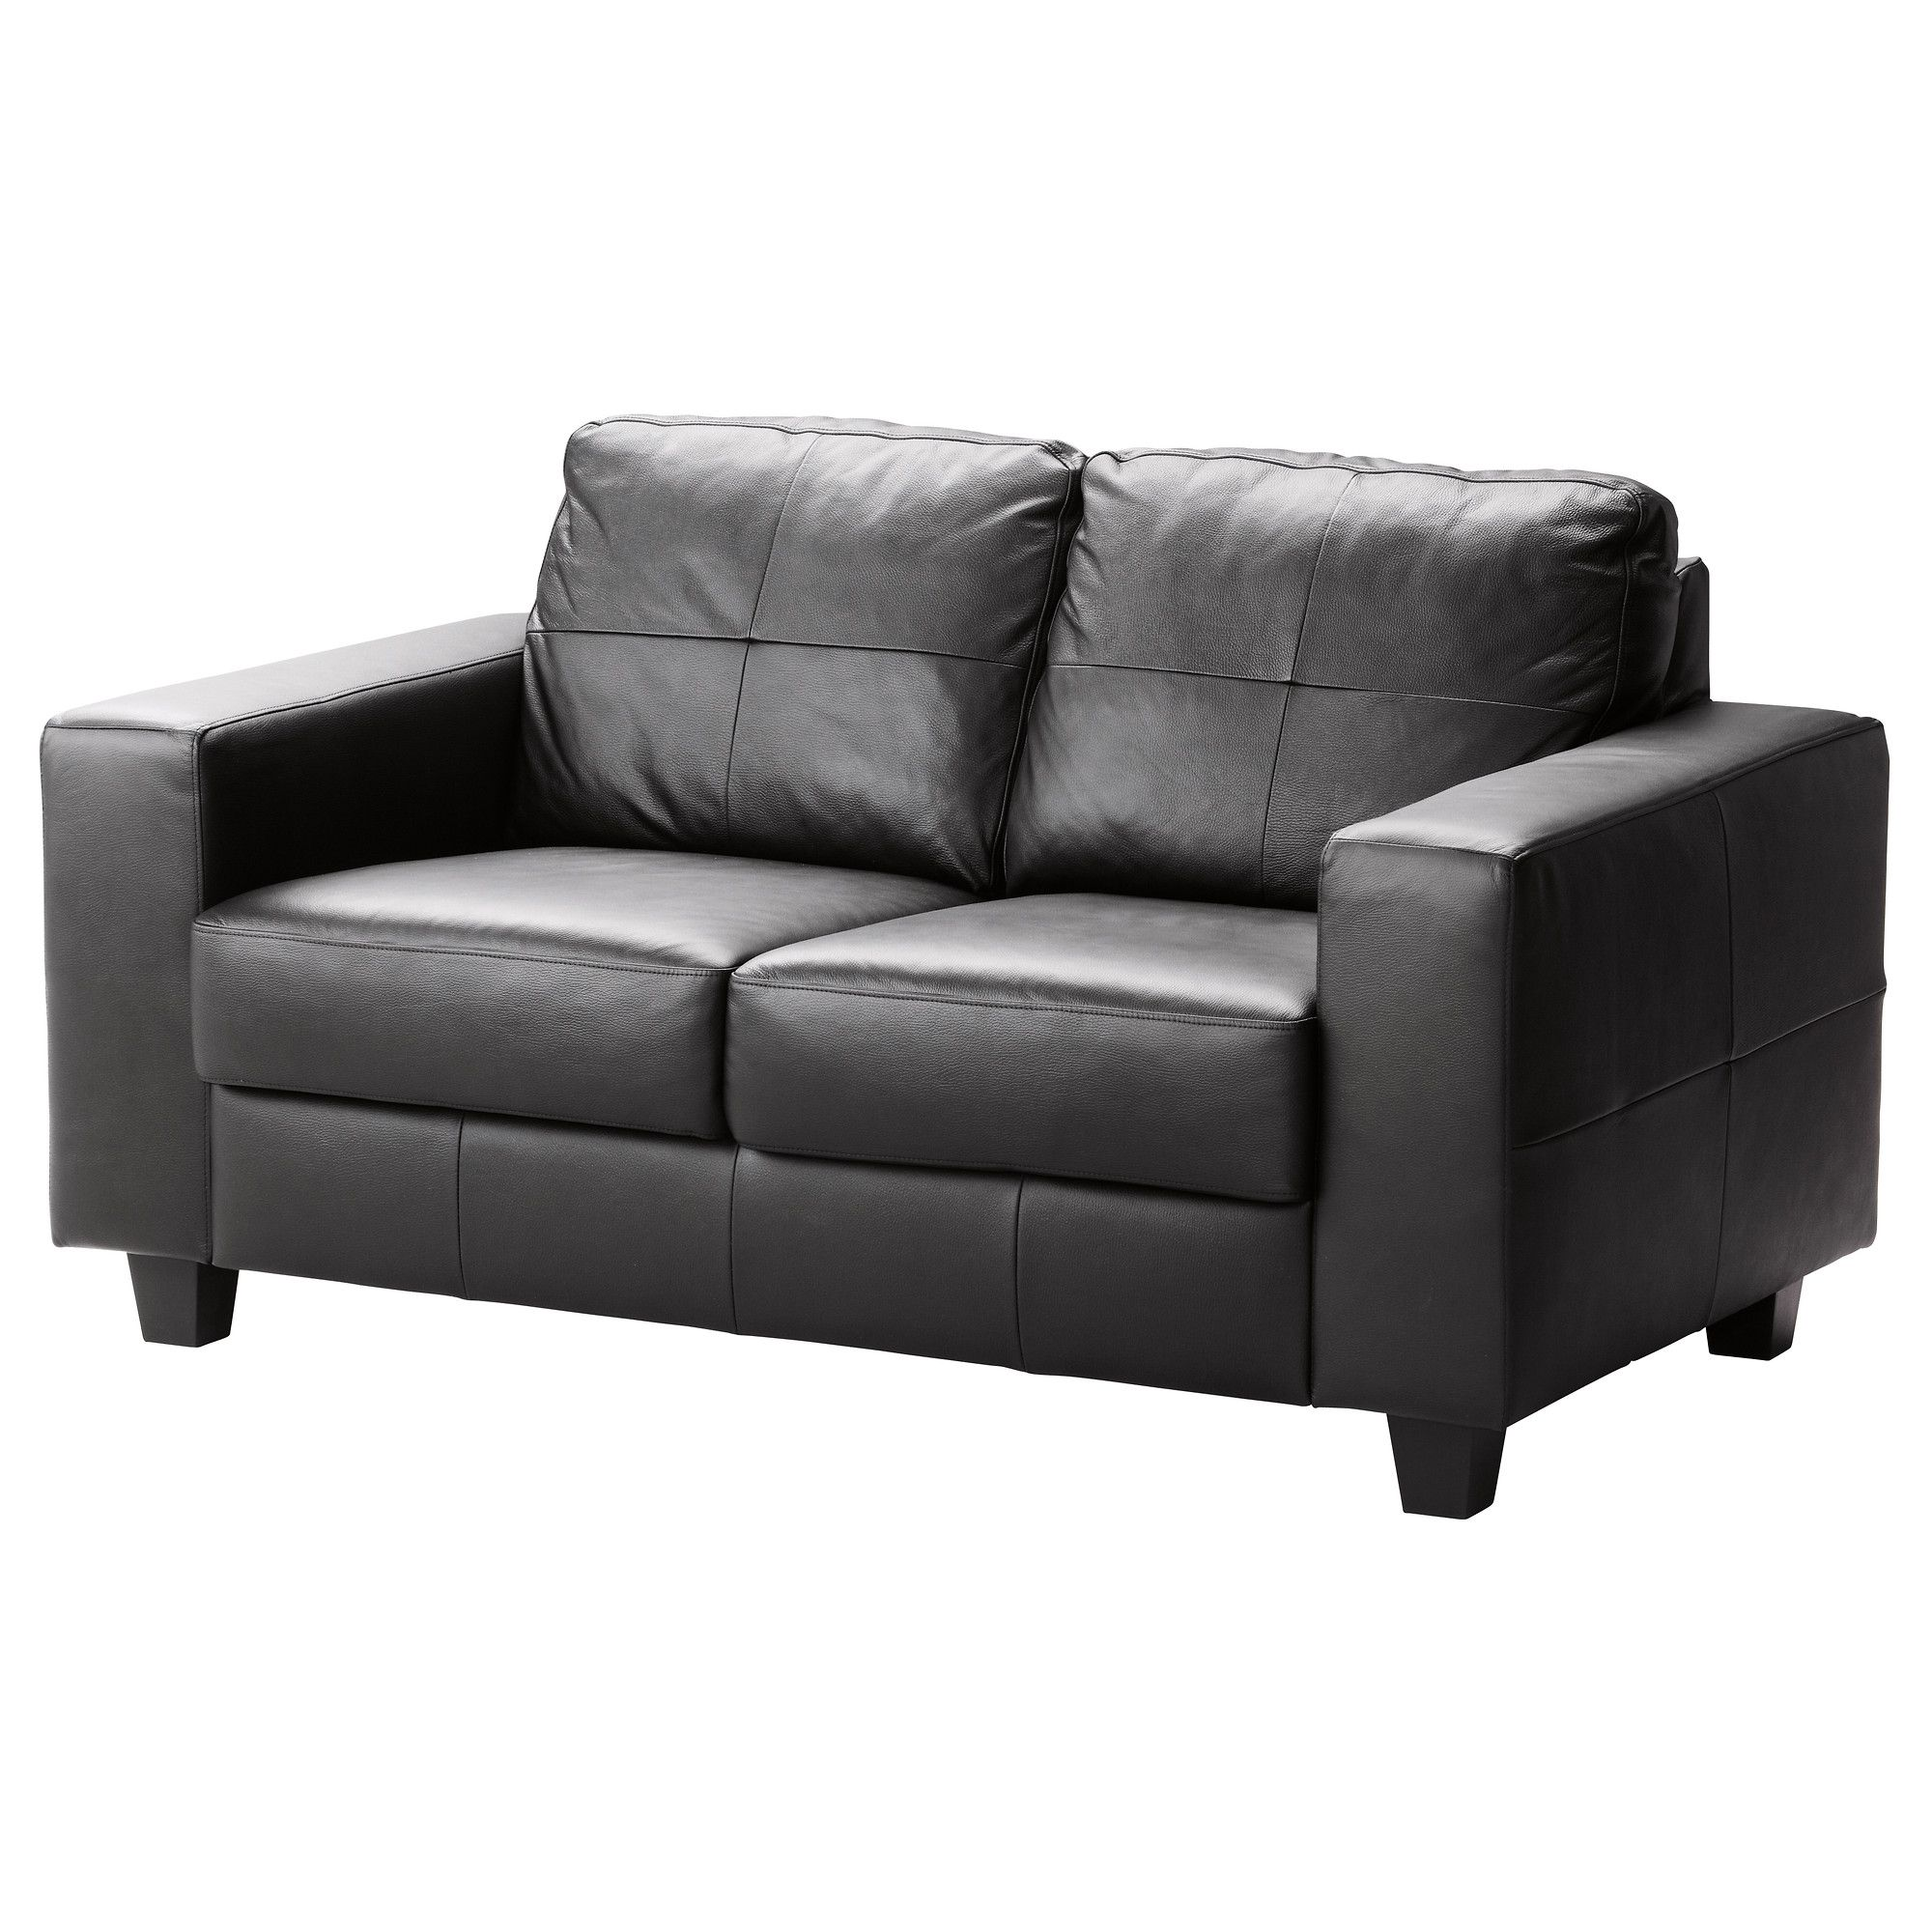 Loveseat Ikea Skogaby Loveseat Ikea Furniture Ikea Leather Sofa Ikea